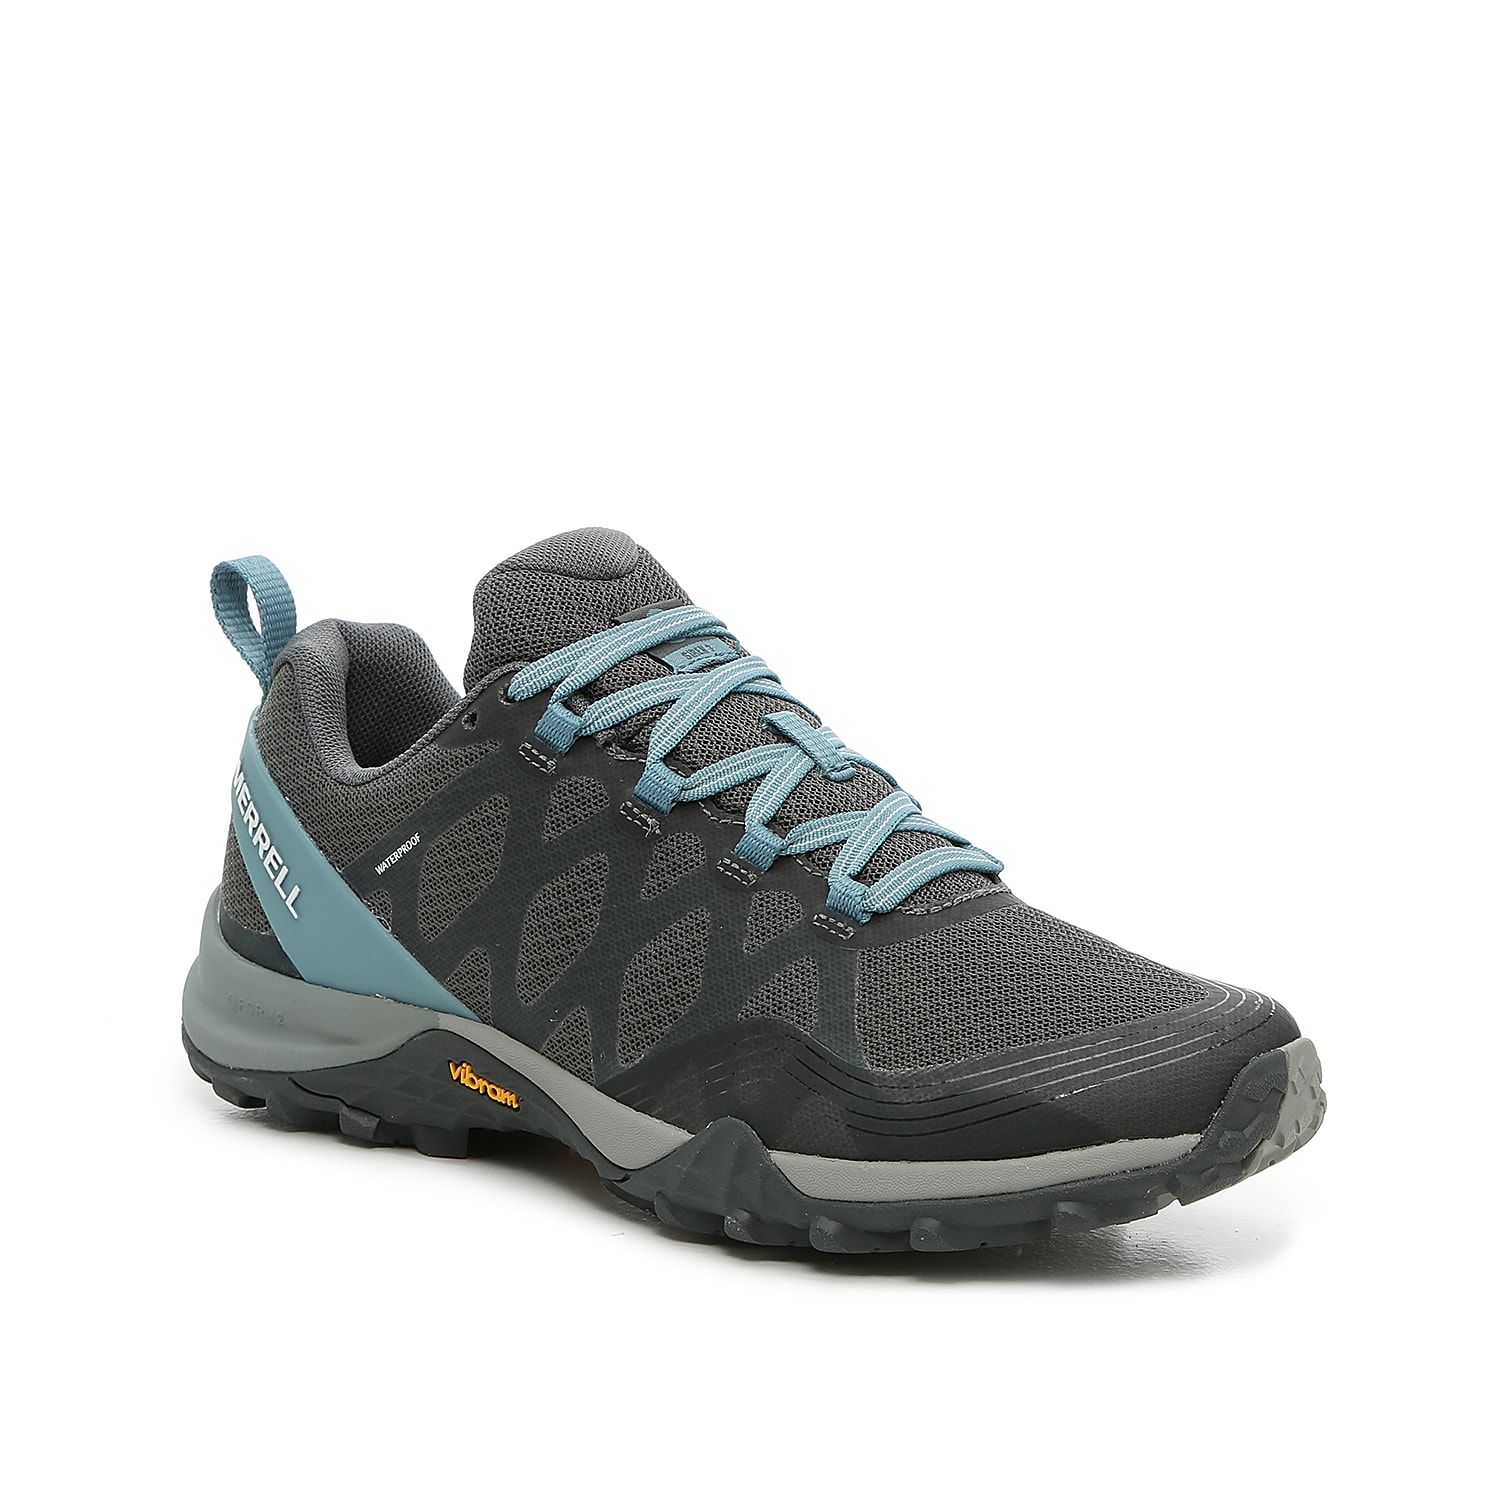 The Siren 3 hiker-style sneaker is built with Q FORM® 2 stability technology and a Vibram® Megagrip® for confidence no matter the terrain. The removable contoured insole provides light support to all three arches on the foot, and the dual-density midsole with heel-centering technology provides engineered alignment.